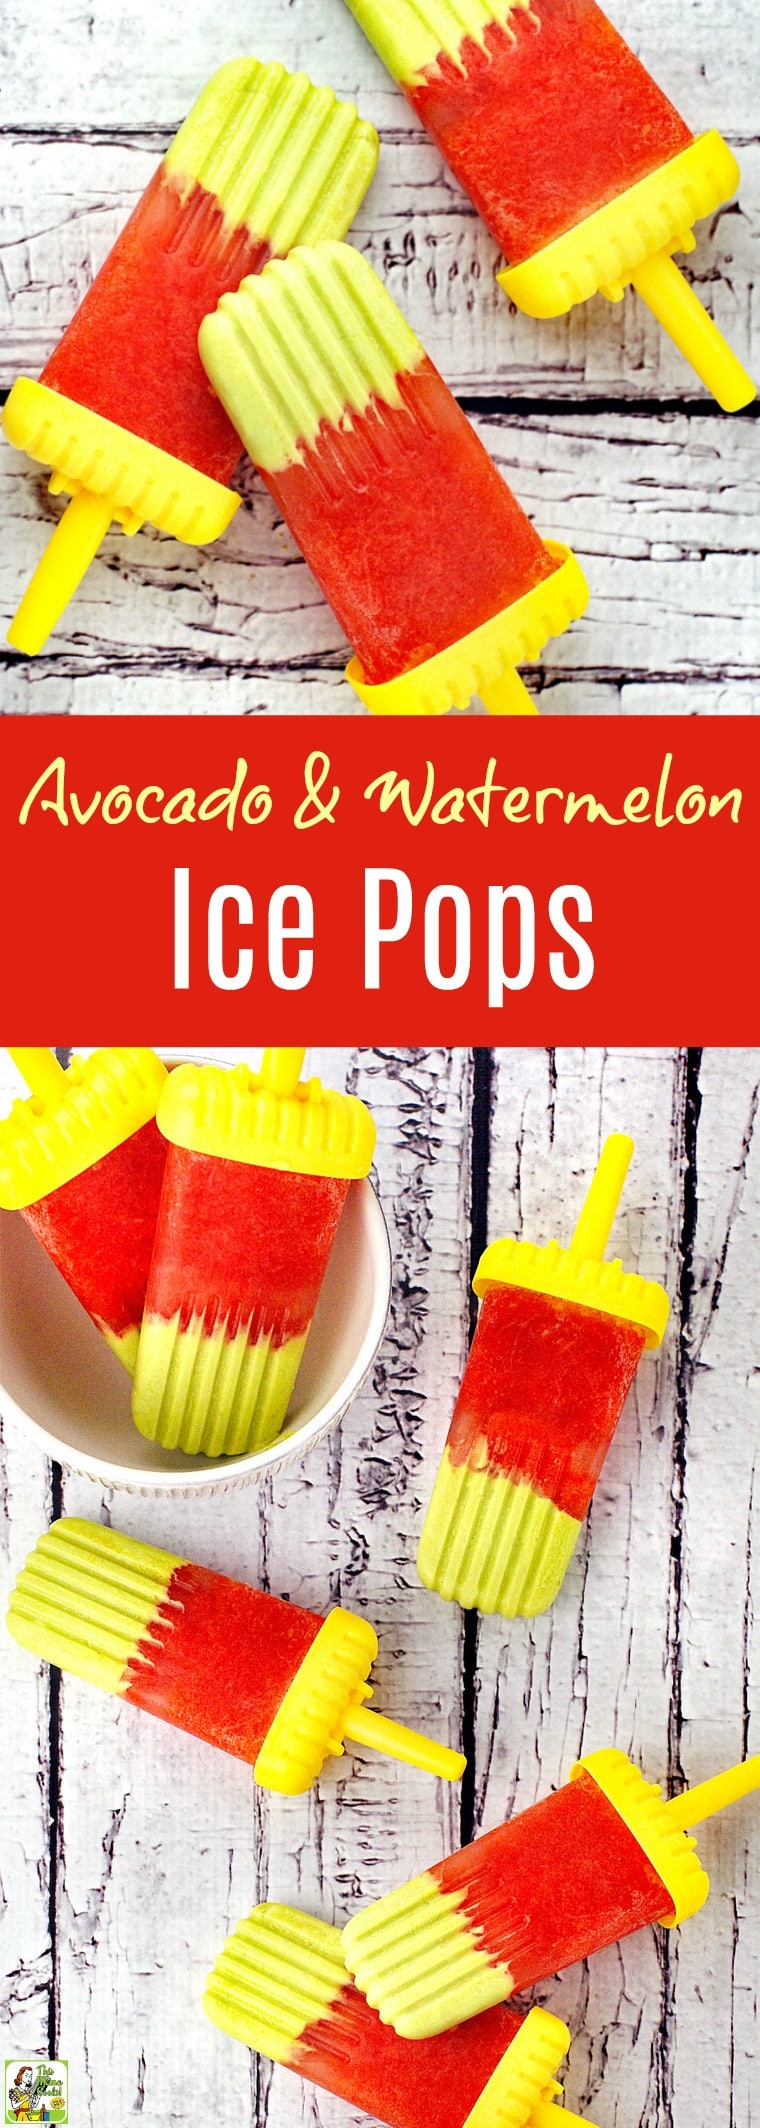 Kids will love making this healthy Avocado & Watermelon Ice Pops recipe. Click to get this easy to make dairy free coconut milk and fruit popsicle recipe. It's gluten-free and sugar-free, too!